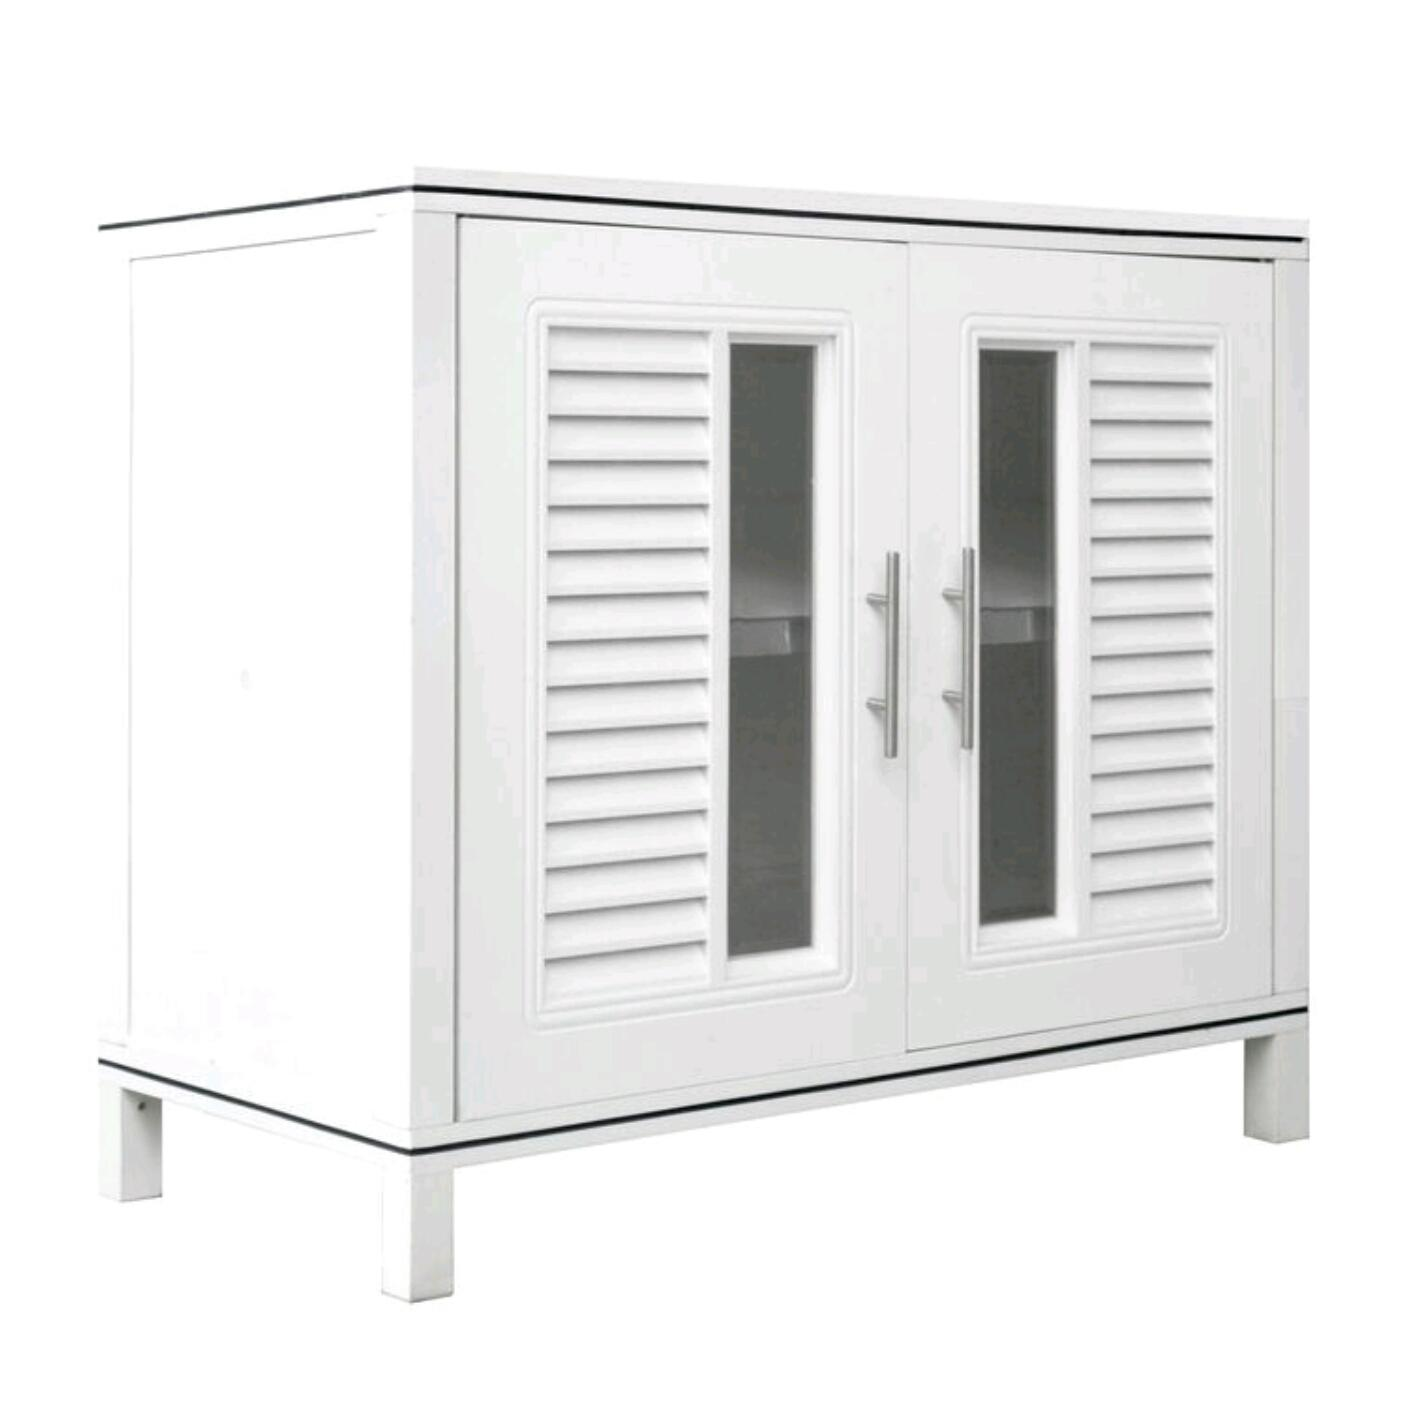 KING CUPBOARD 85 Waterproof Display Cabinet with Nano Coating (White)